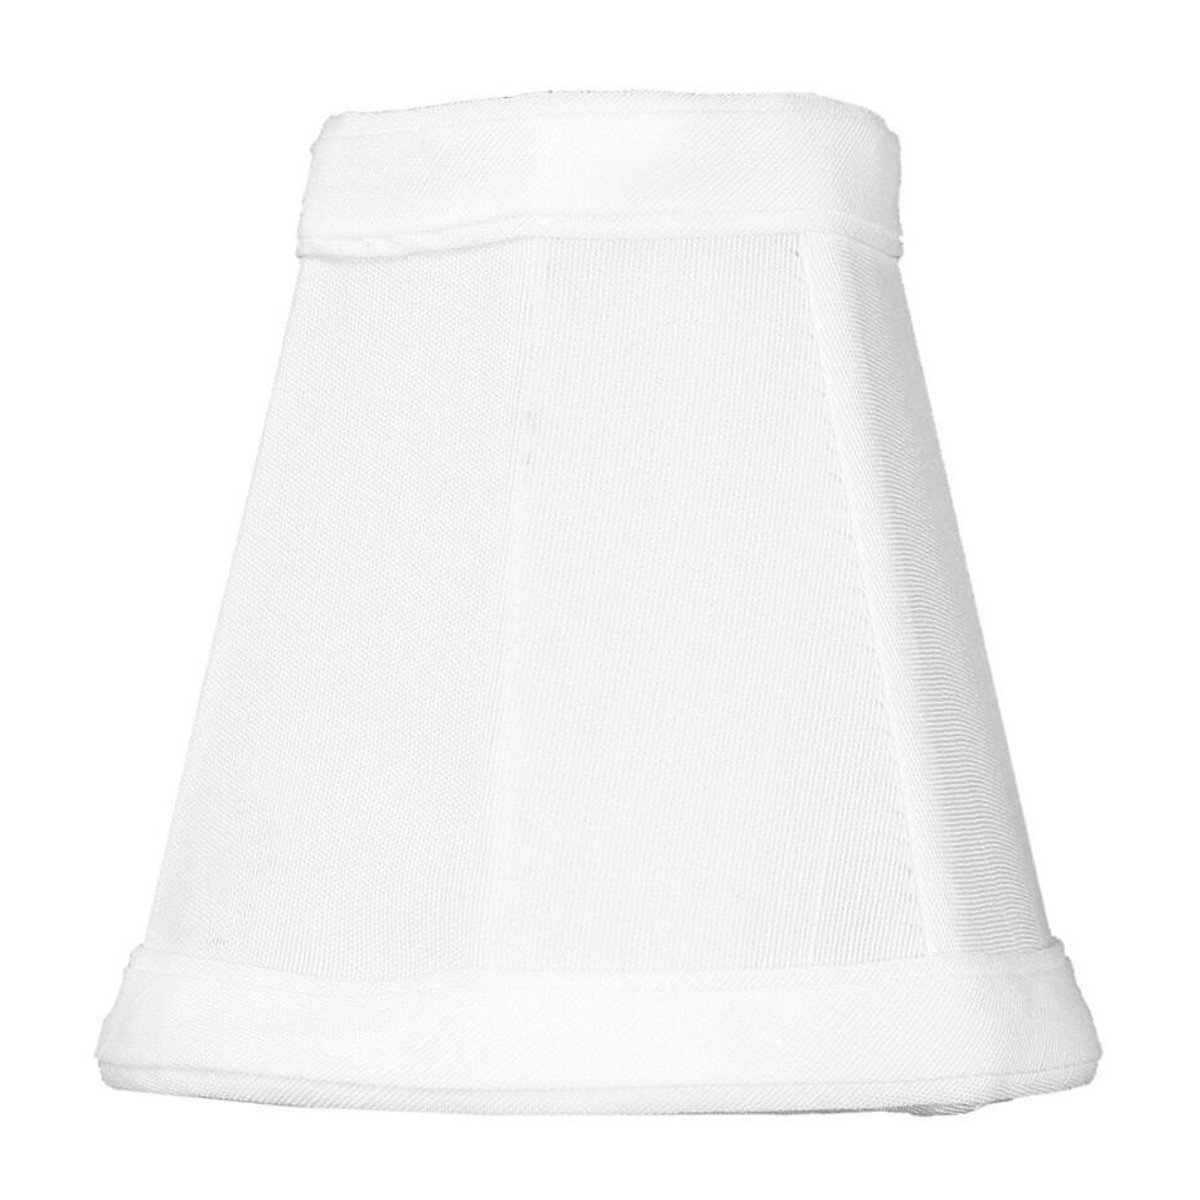 2x4x4 Candelabra Stretch White Clip-On Lampshade By Home Concept - Perfect for chandeliers, foyer lights, and wall sconces - Small, White